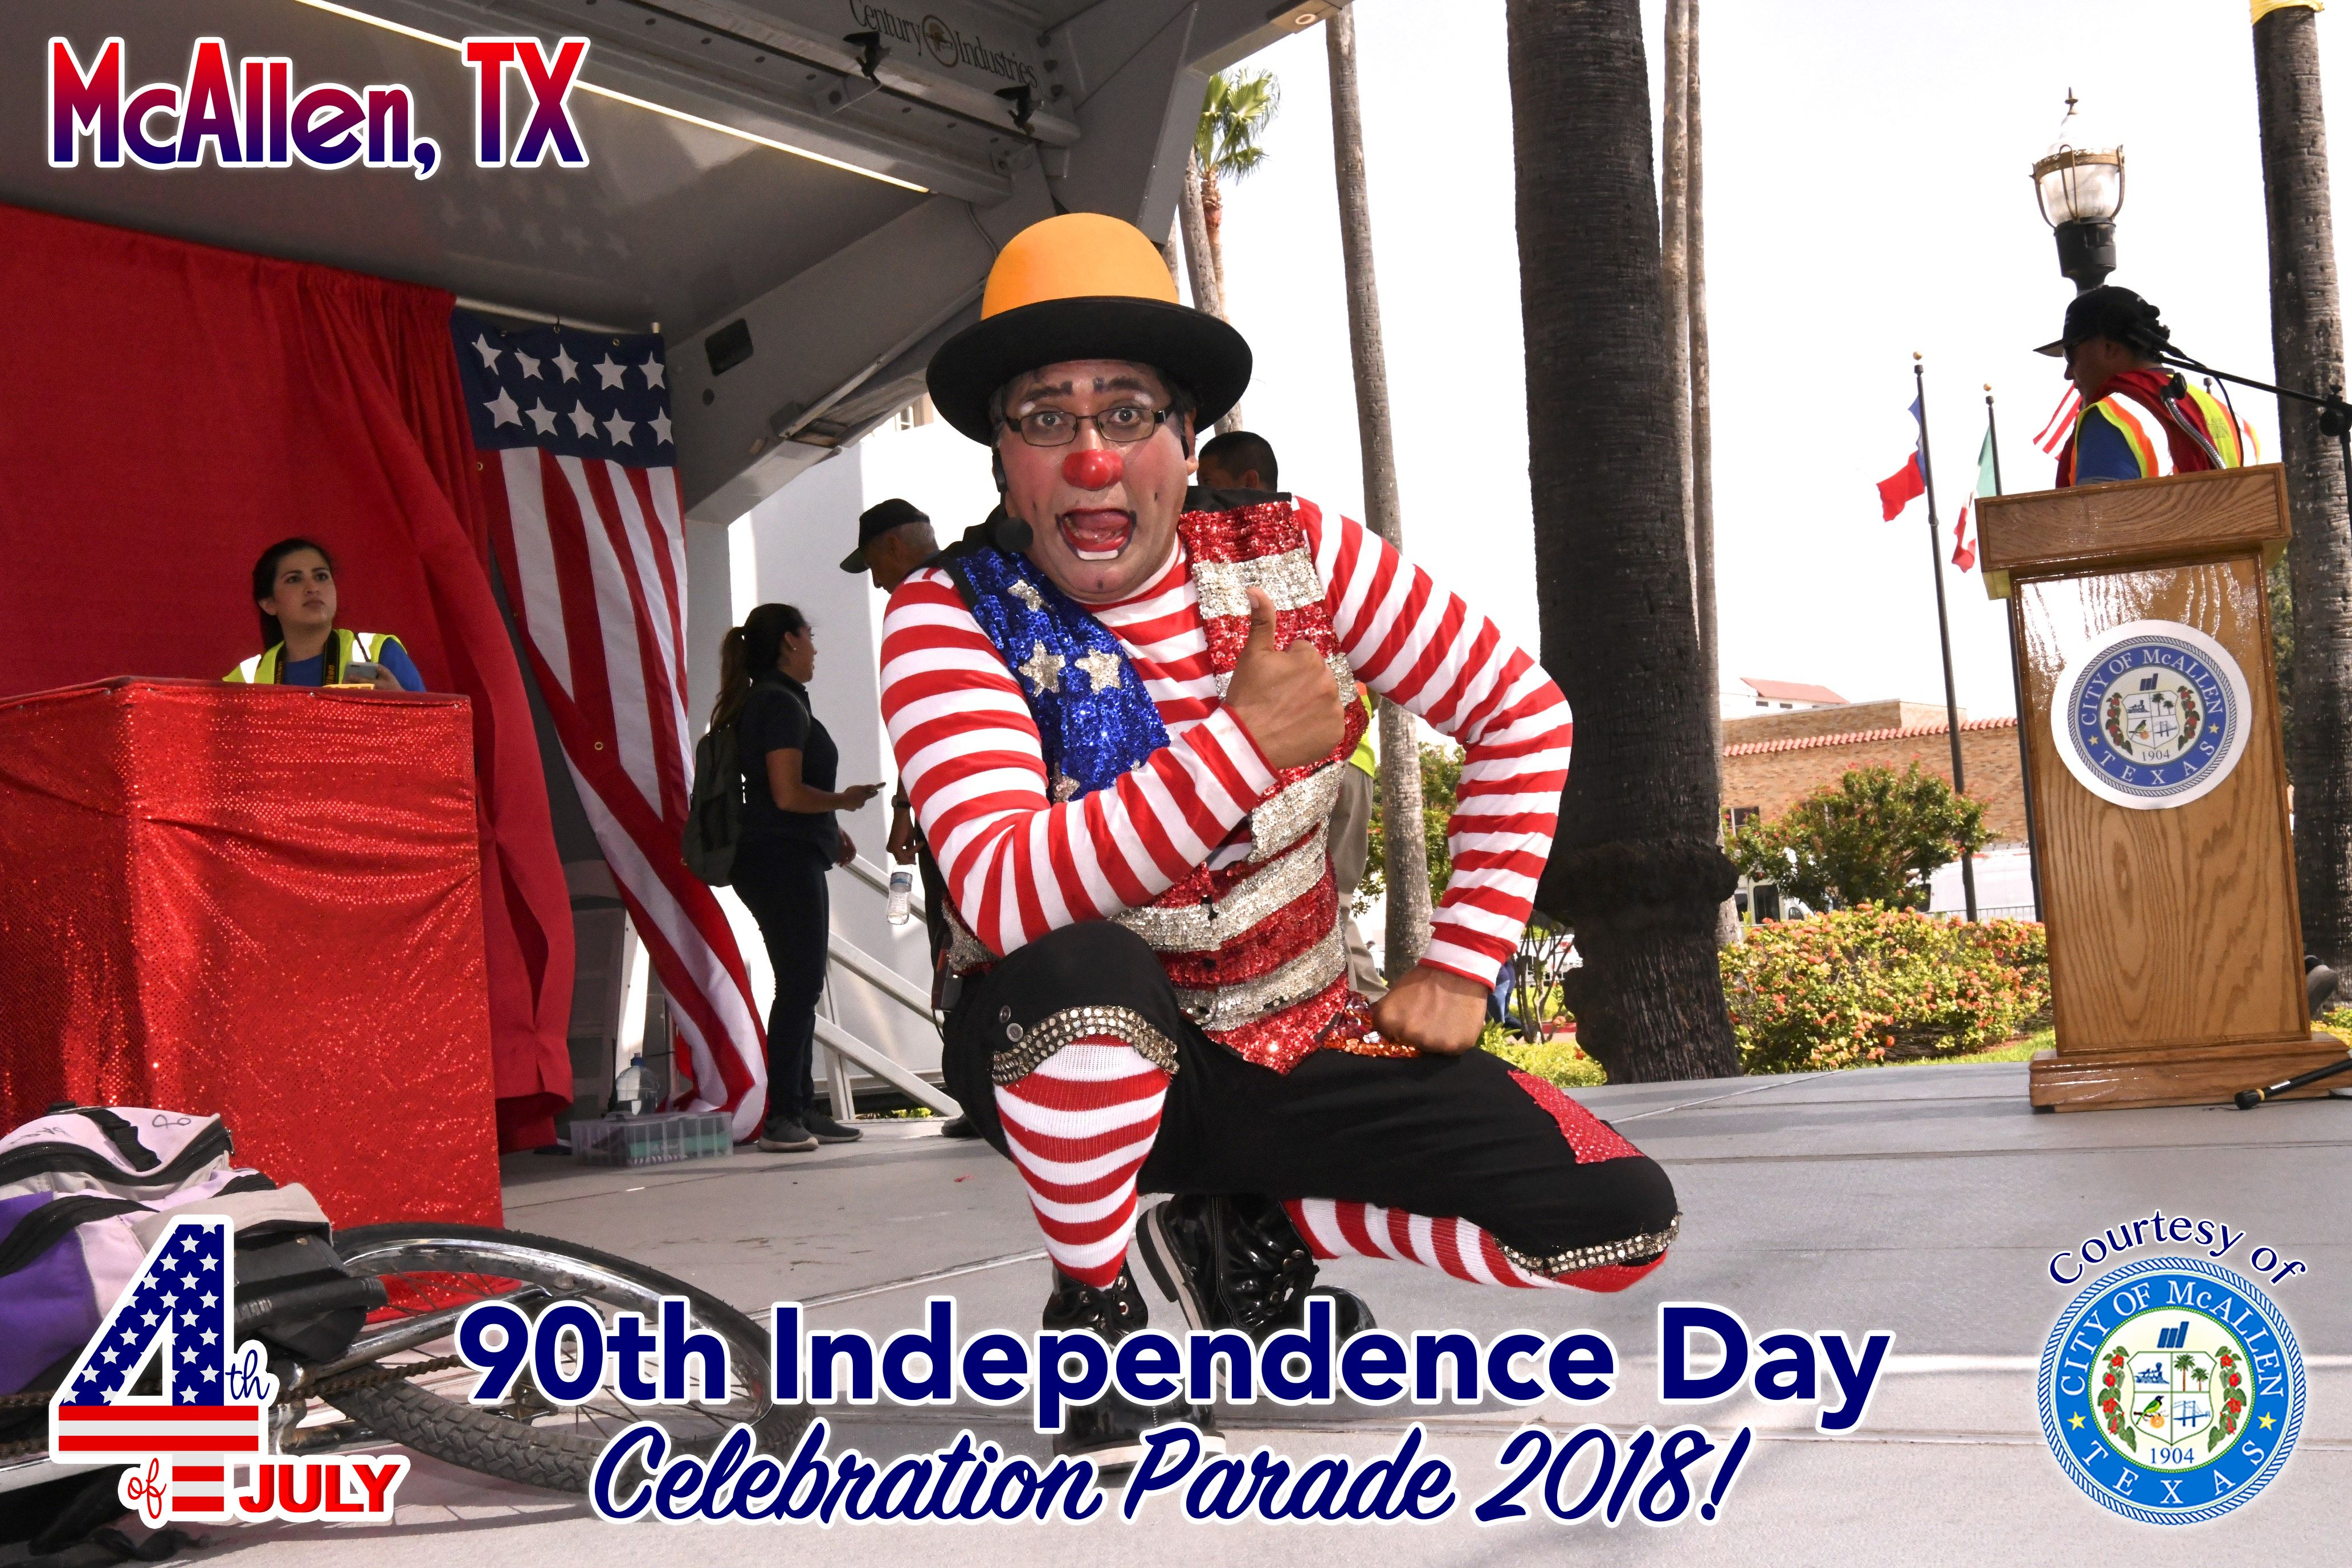 90th McAllen 4th of July Celebration Parade 2018 – Clowns